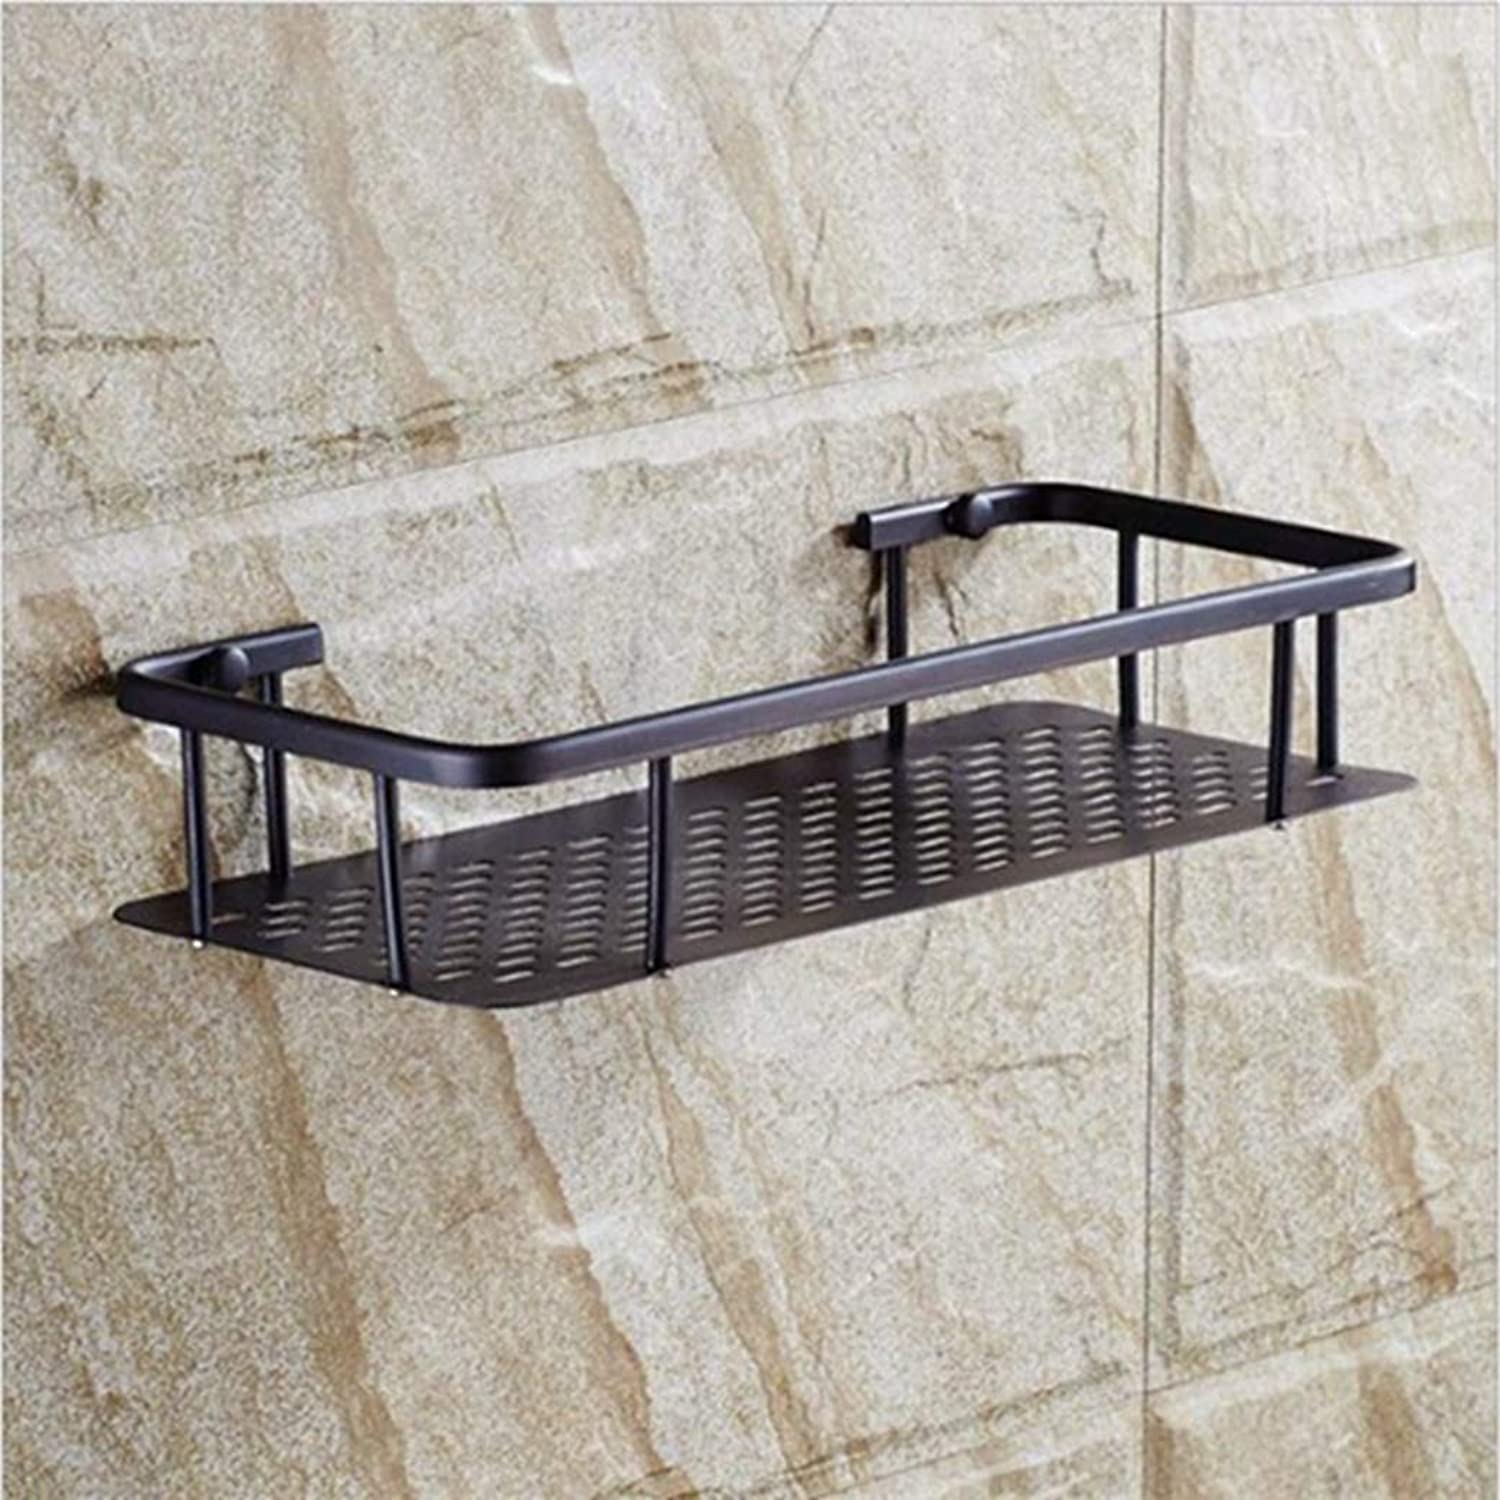 LUDSUY Bathroom Accessories Brass Antique Bronze Double Tiers Bathroom Shelves Basket Holder Bathroom Soap Holder Bathroom Shampoo Shelf